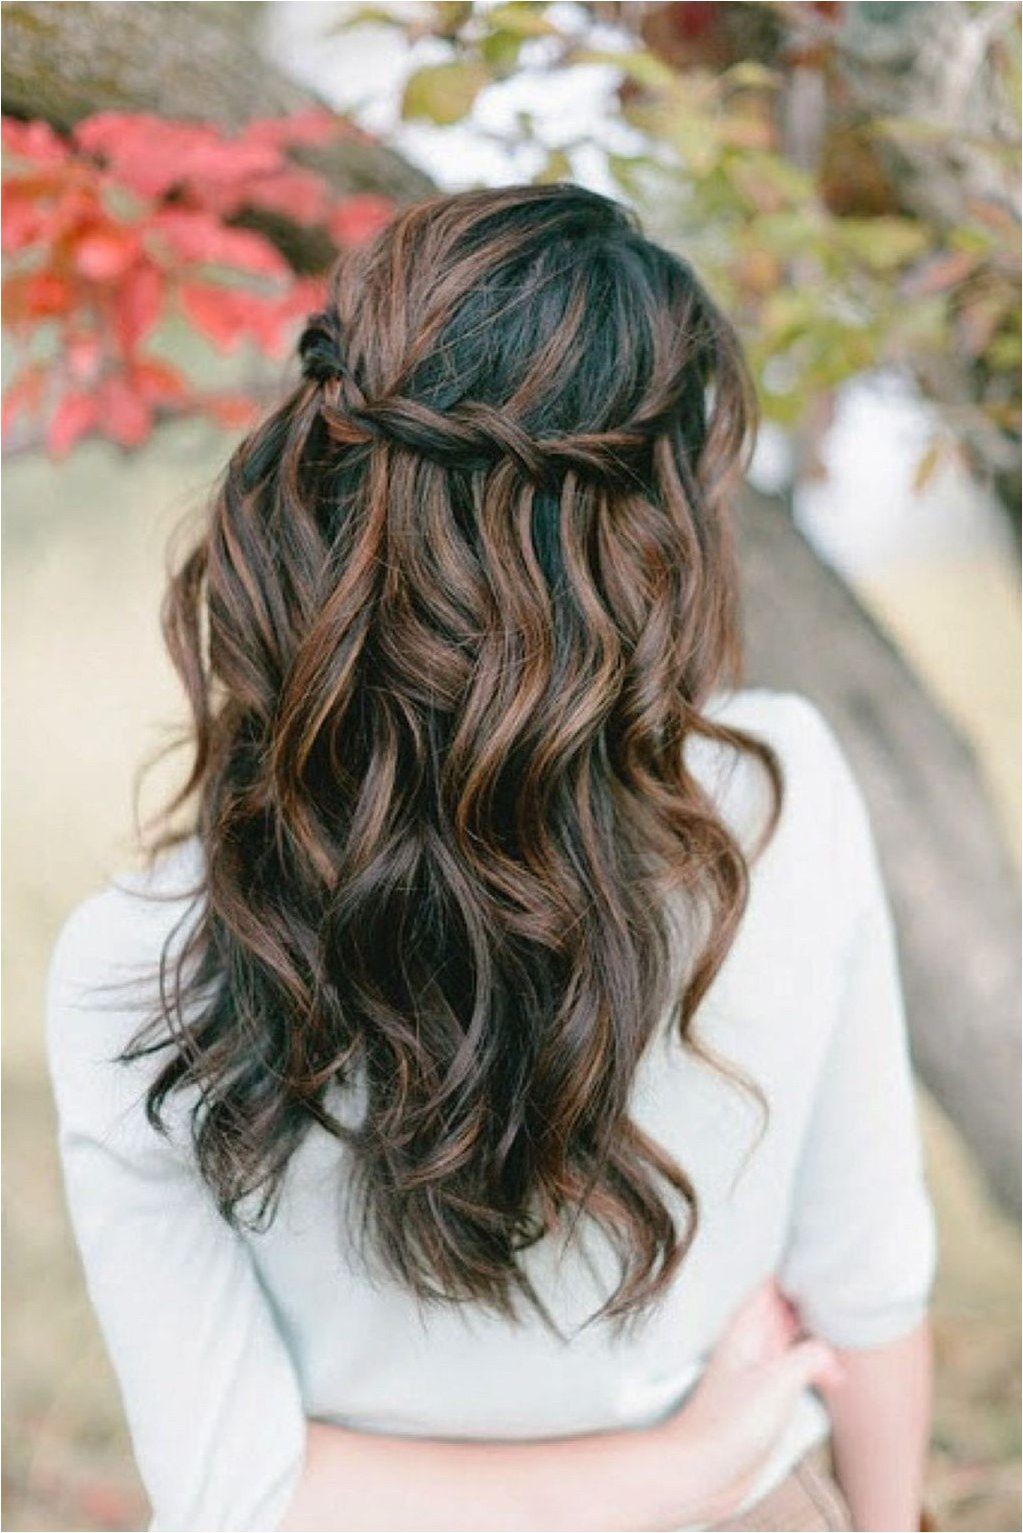 20 Beautiful Hairstyles for Prom pictures